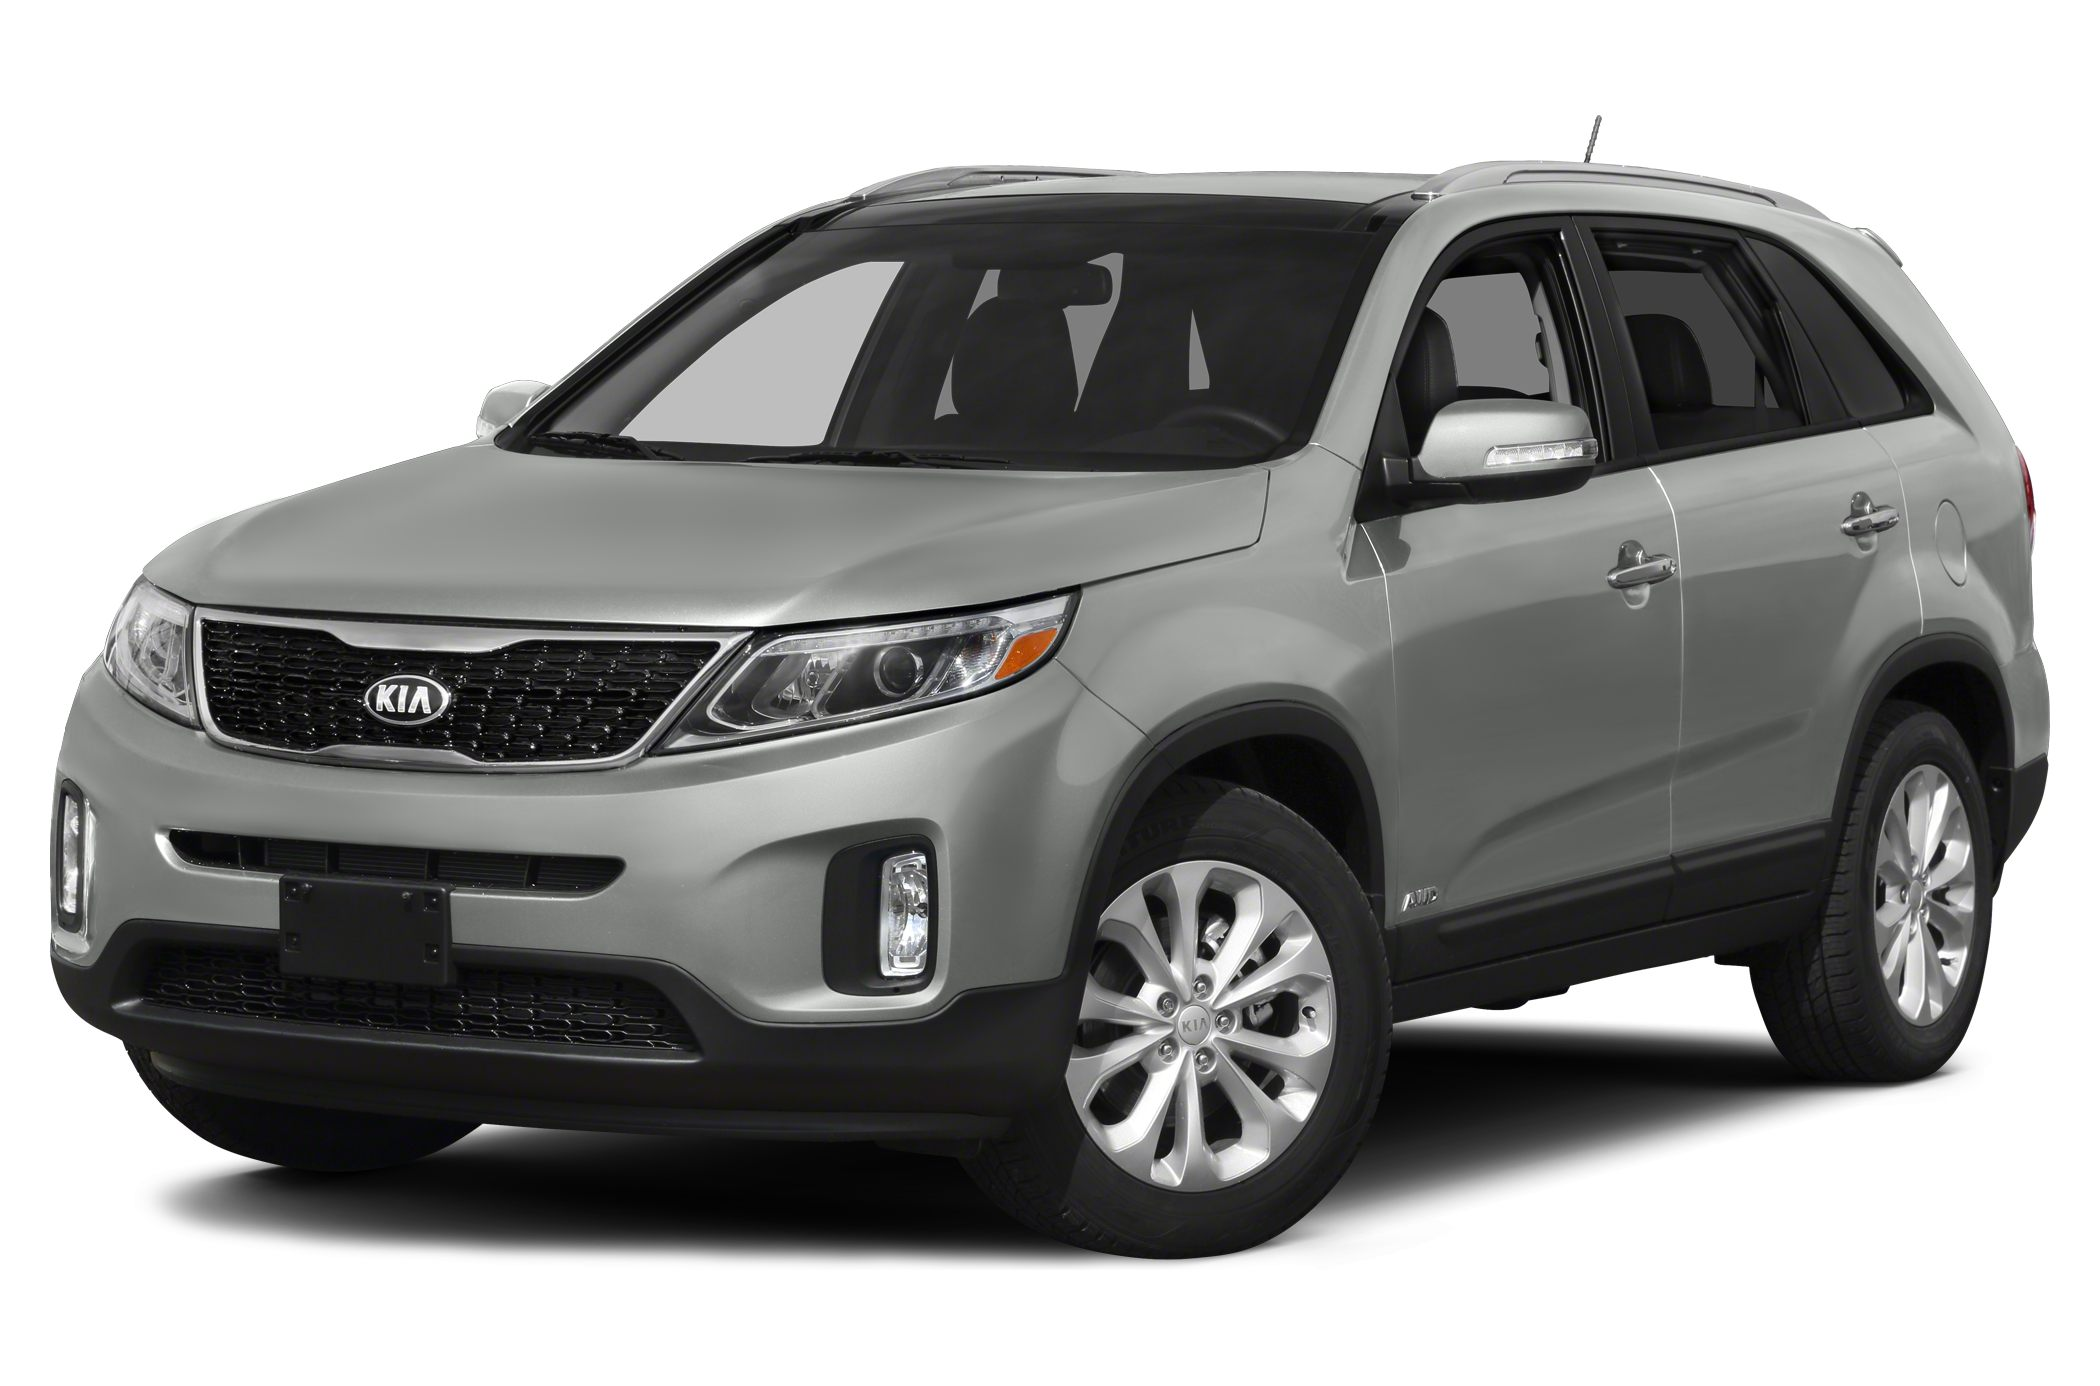 2015 Kia Sorento SX SUV for sale in Gaithersburg for $34,955 with 4 miles.